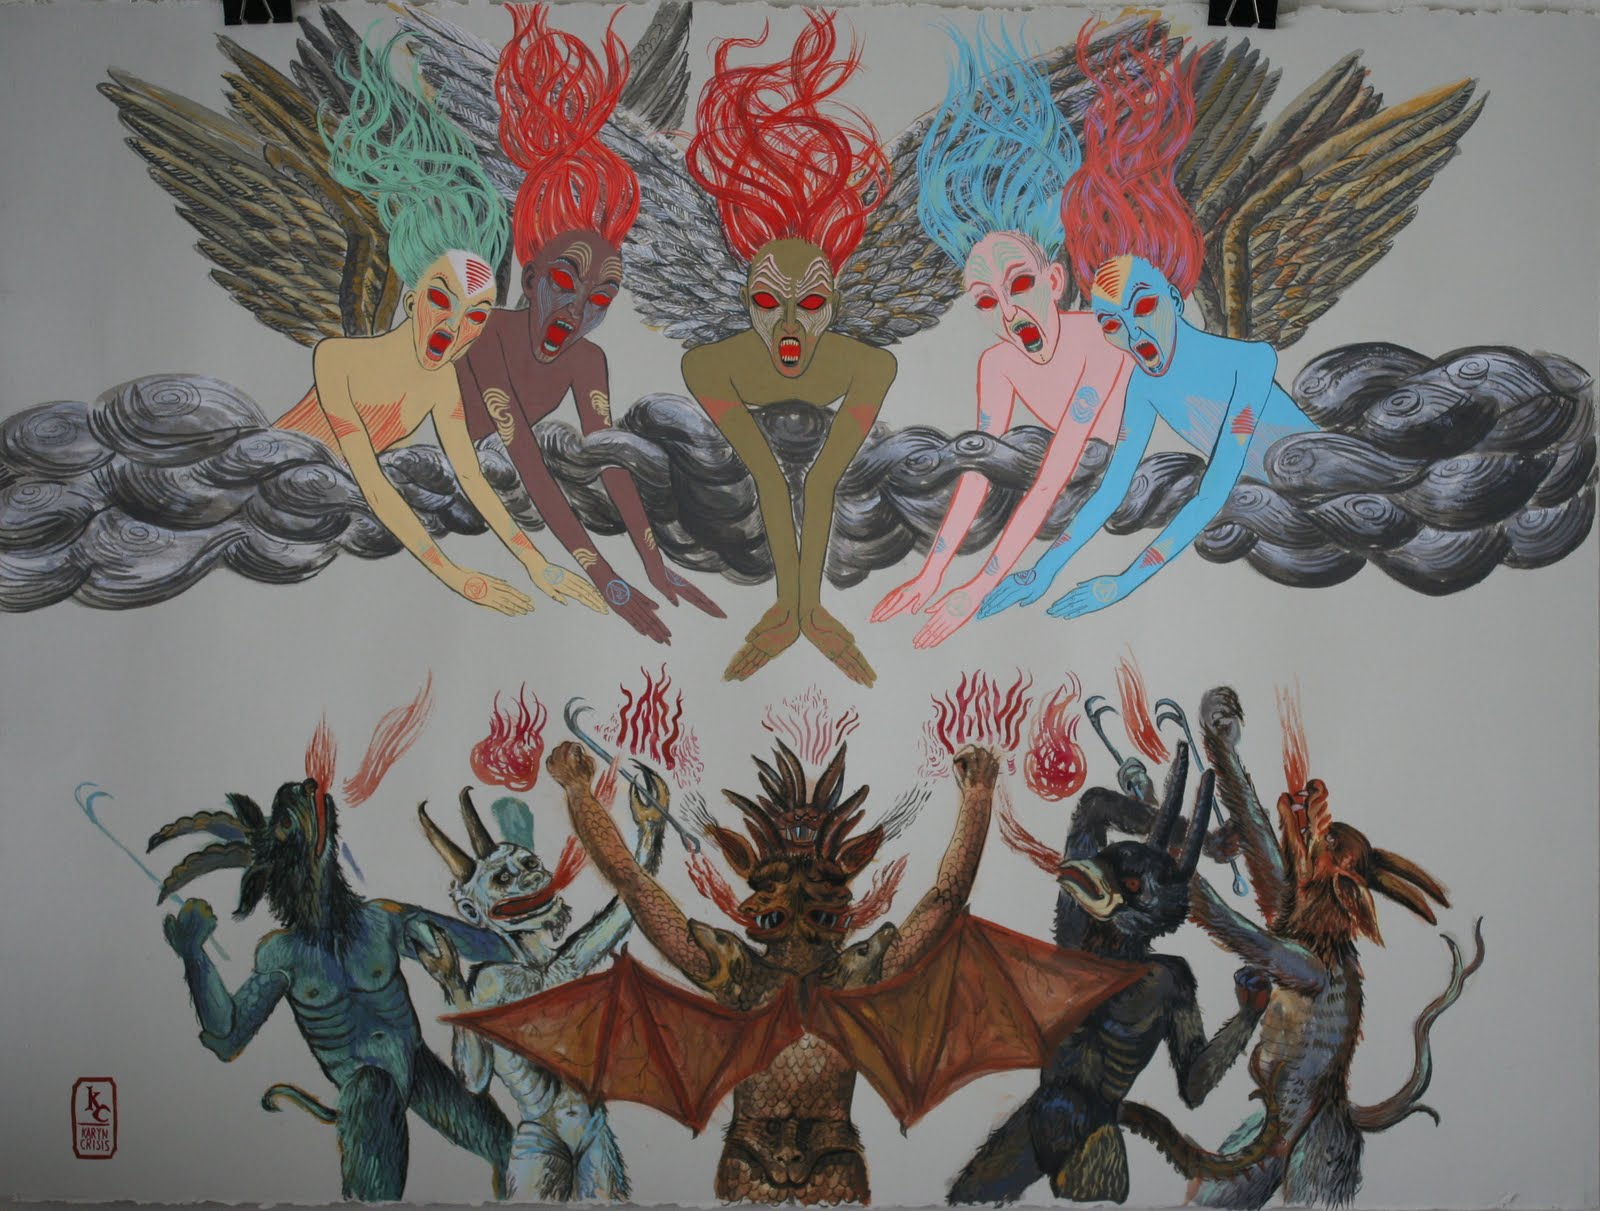 angels vs demons painting angels and demons art angels painting    Angels Demons Painting